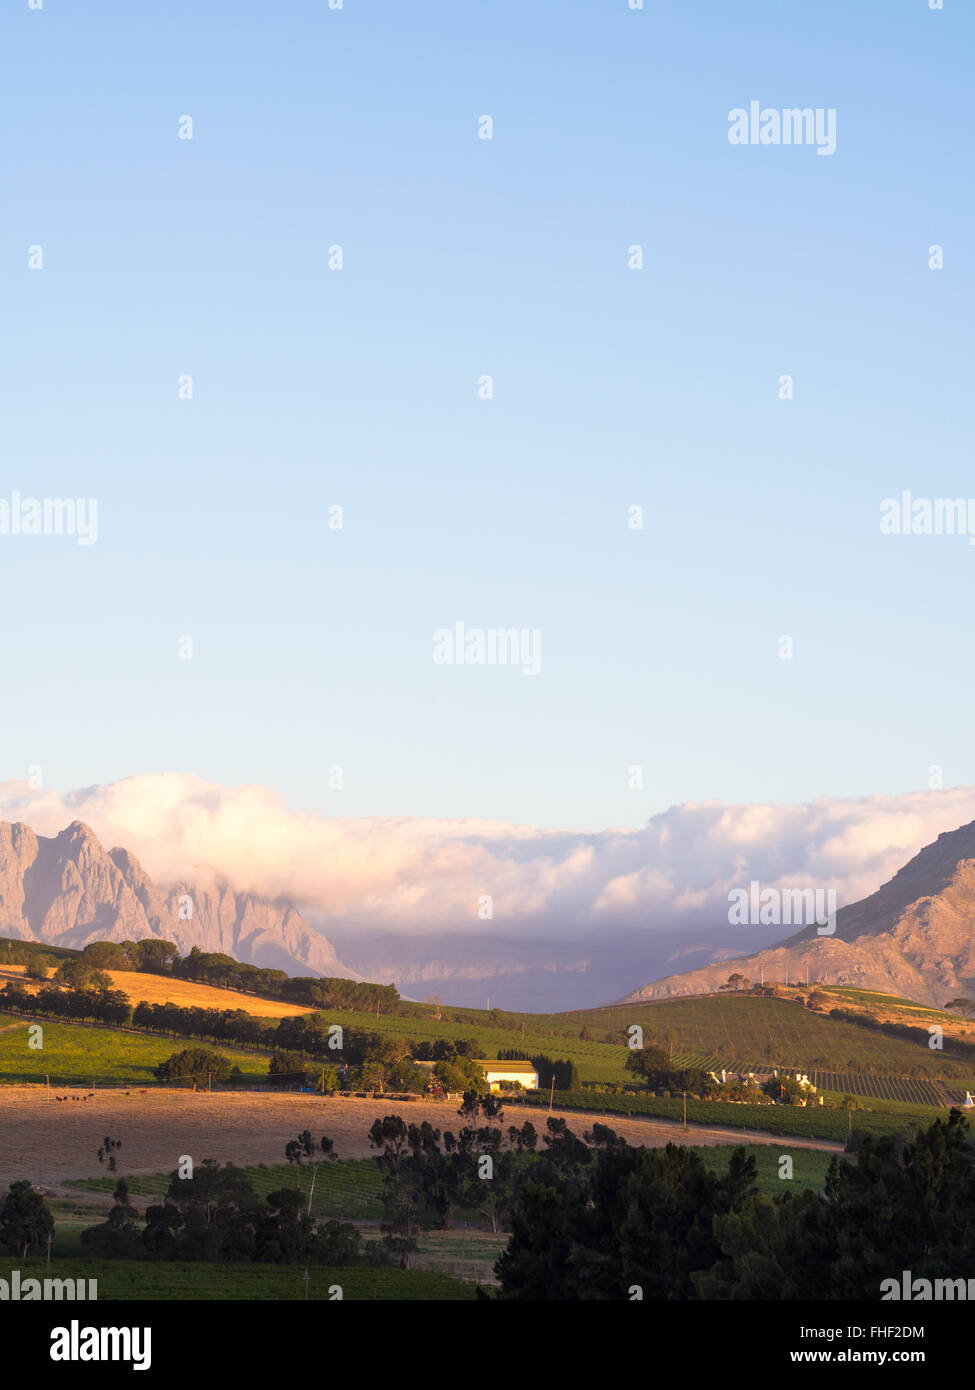 Landscape in Stellenbosch, Western Cape, South Africa, at sunset. - Stock Image